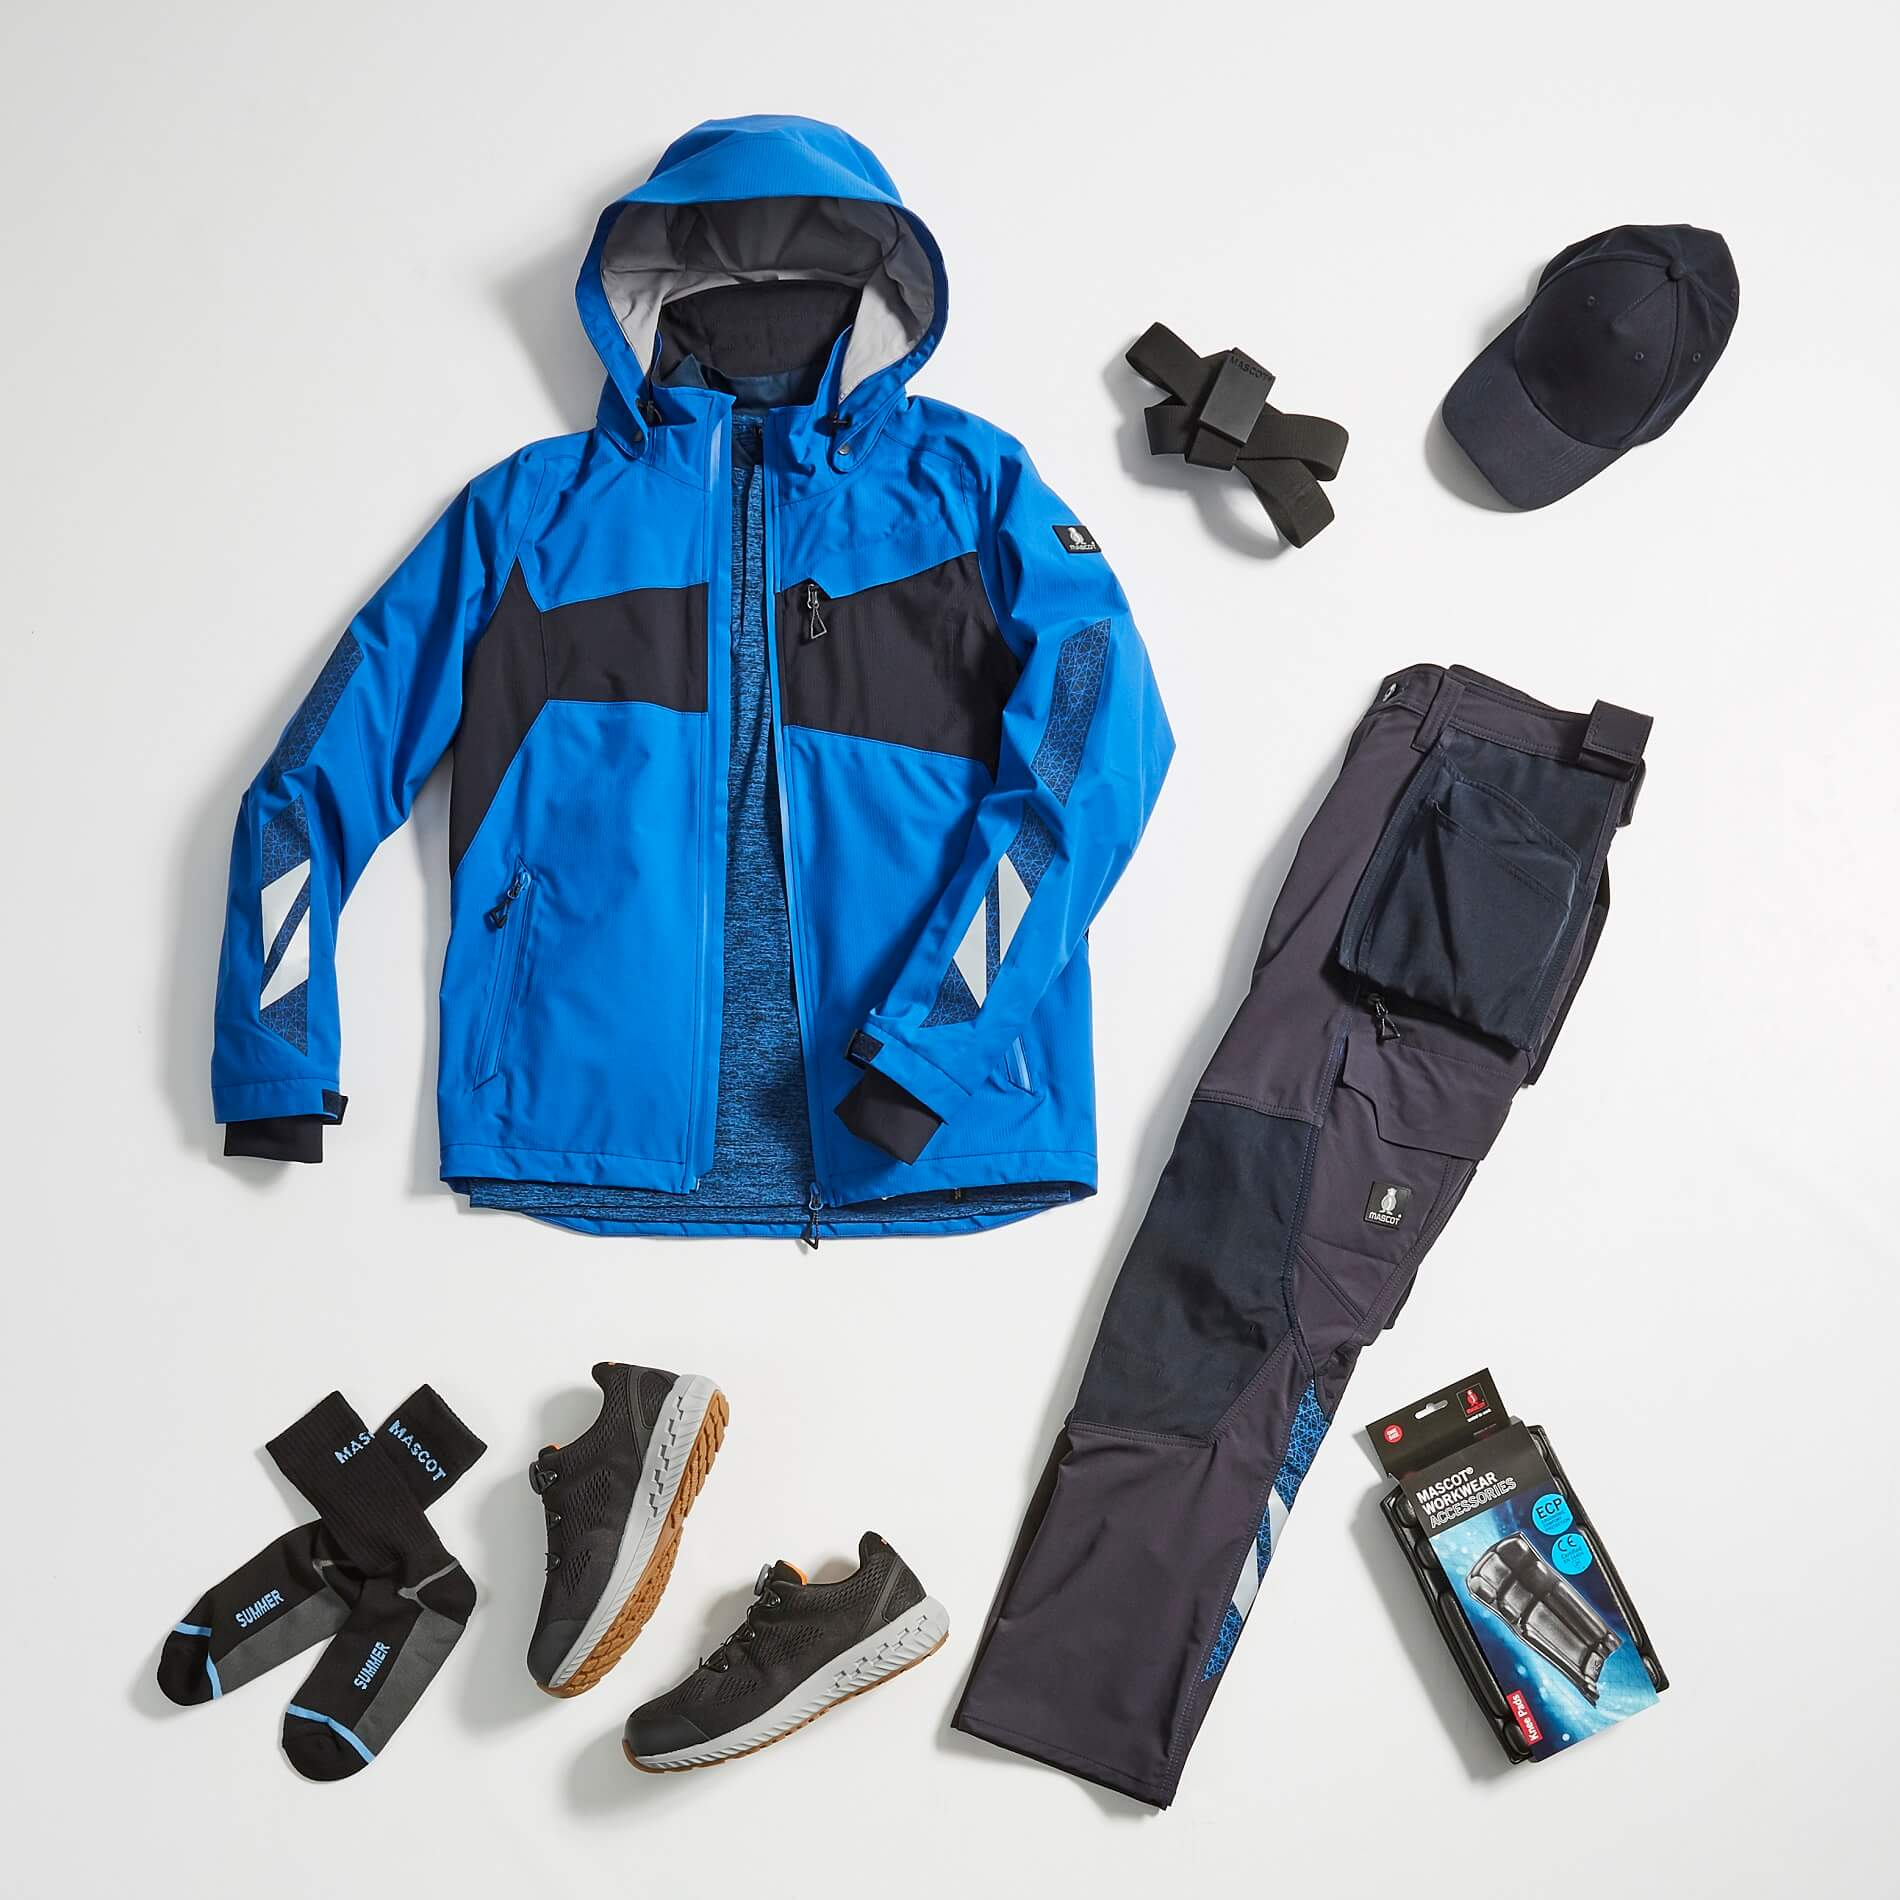 MASCOT® ACCELERATE - Work Pants, Jacket & Accessories - Collage